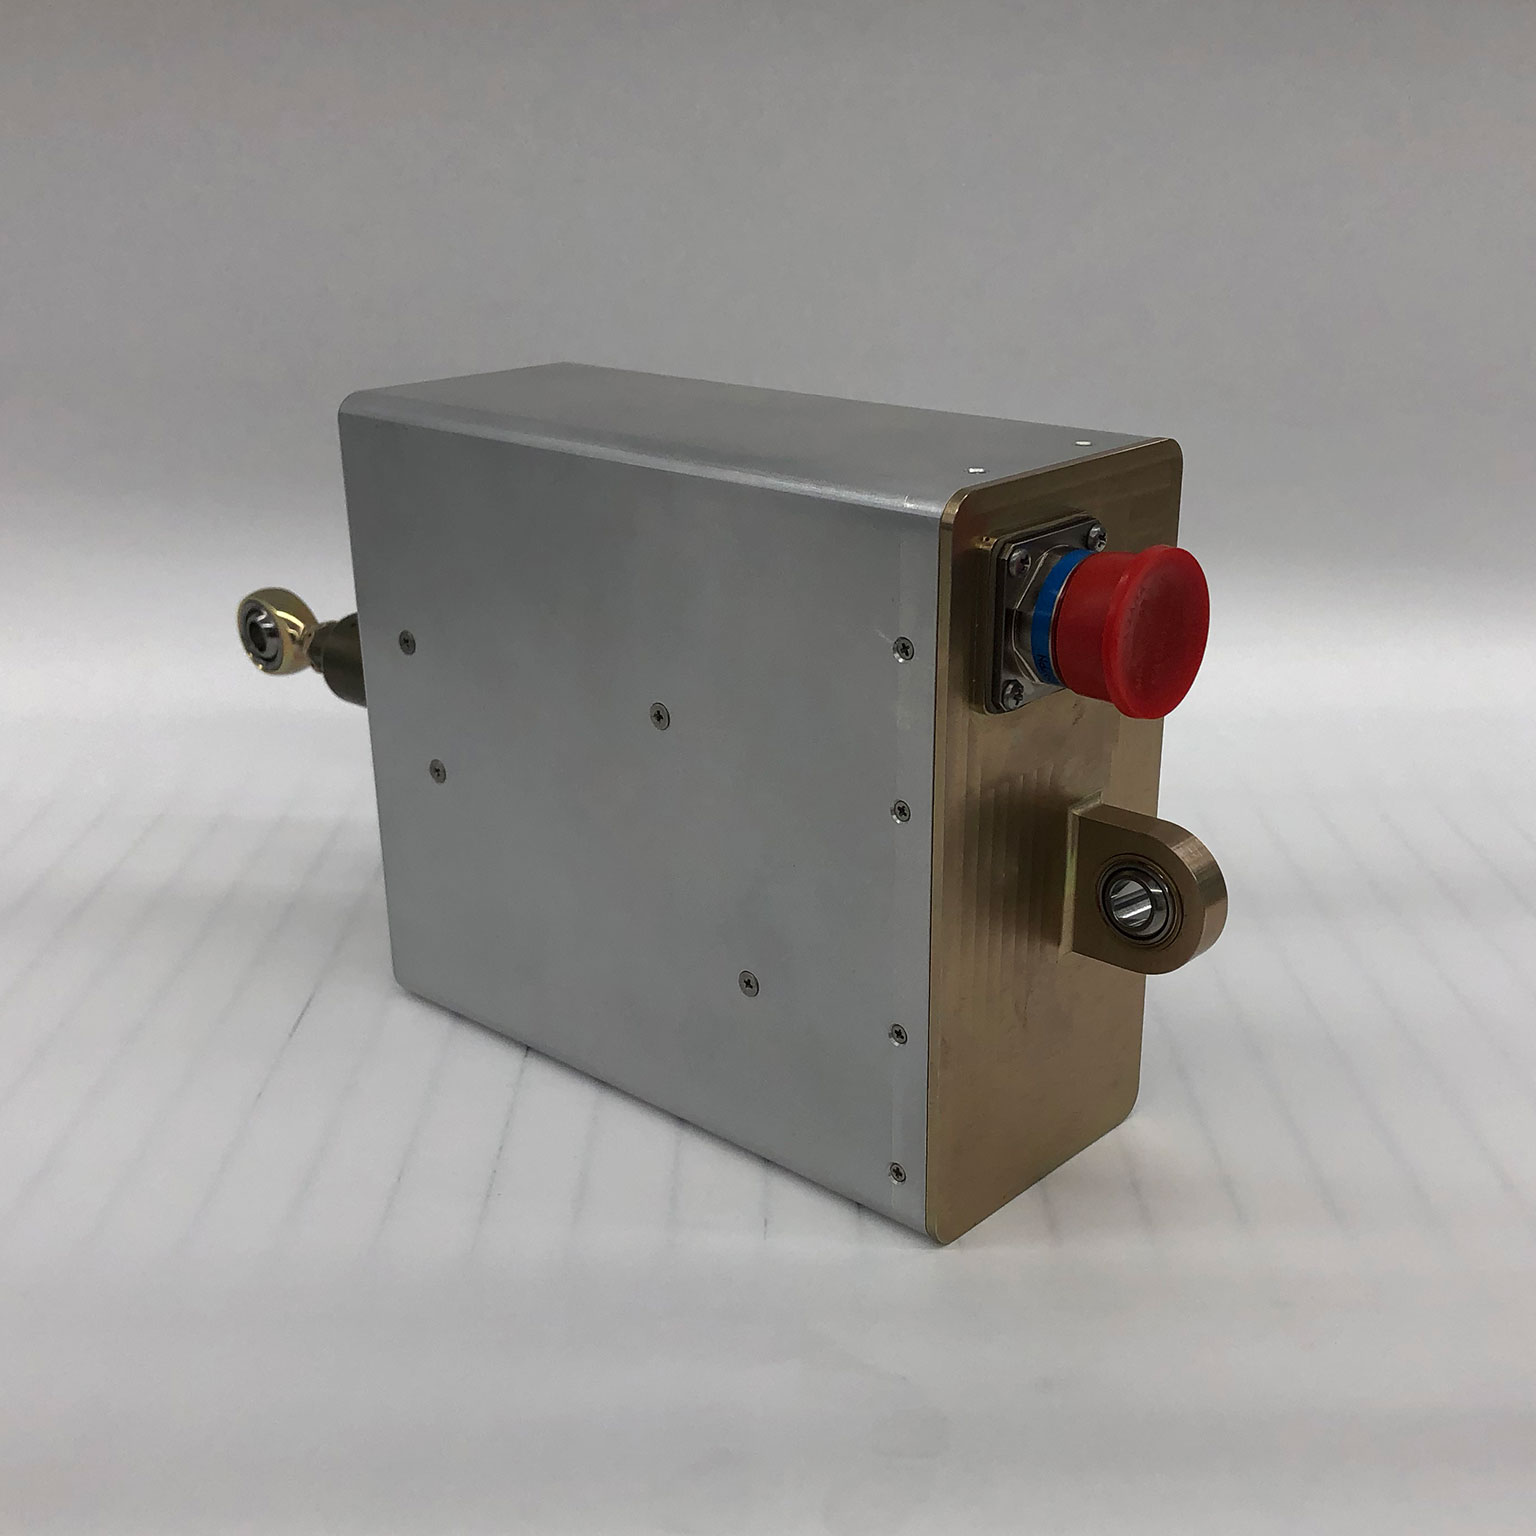 Thin Airfoil Flight Control Actuators – Neutral Configuration